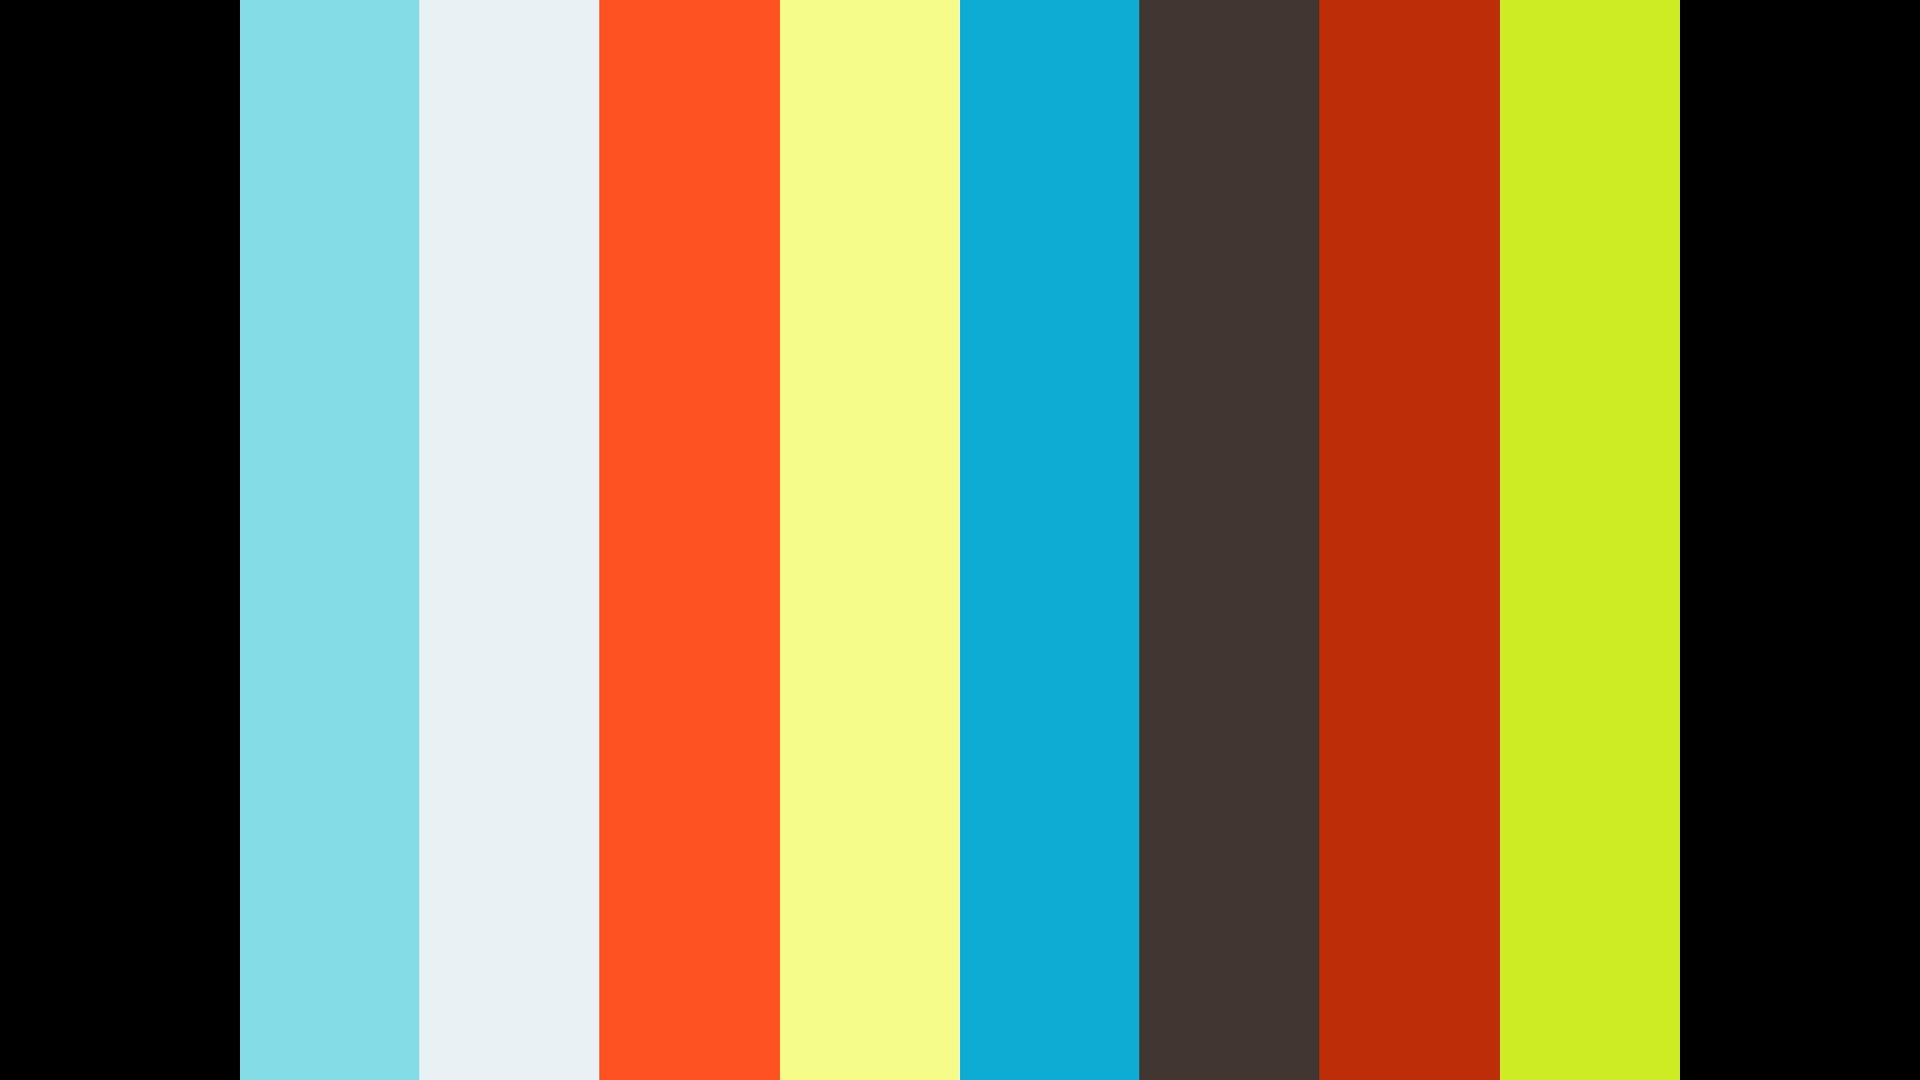 Statkraft woodchipping in Norway